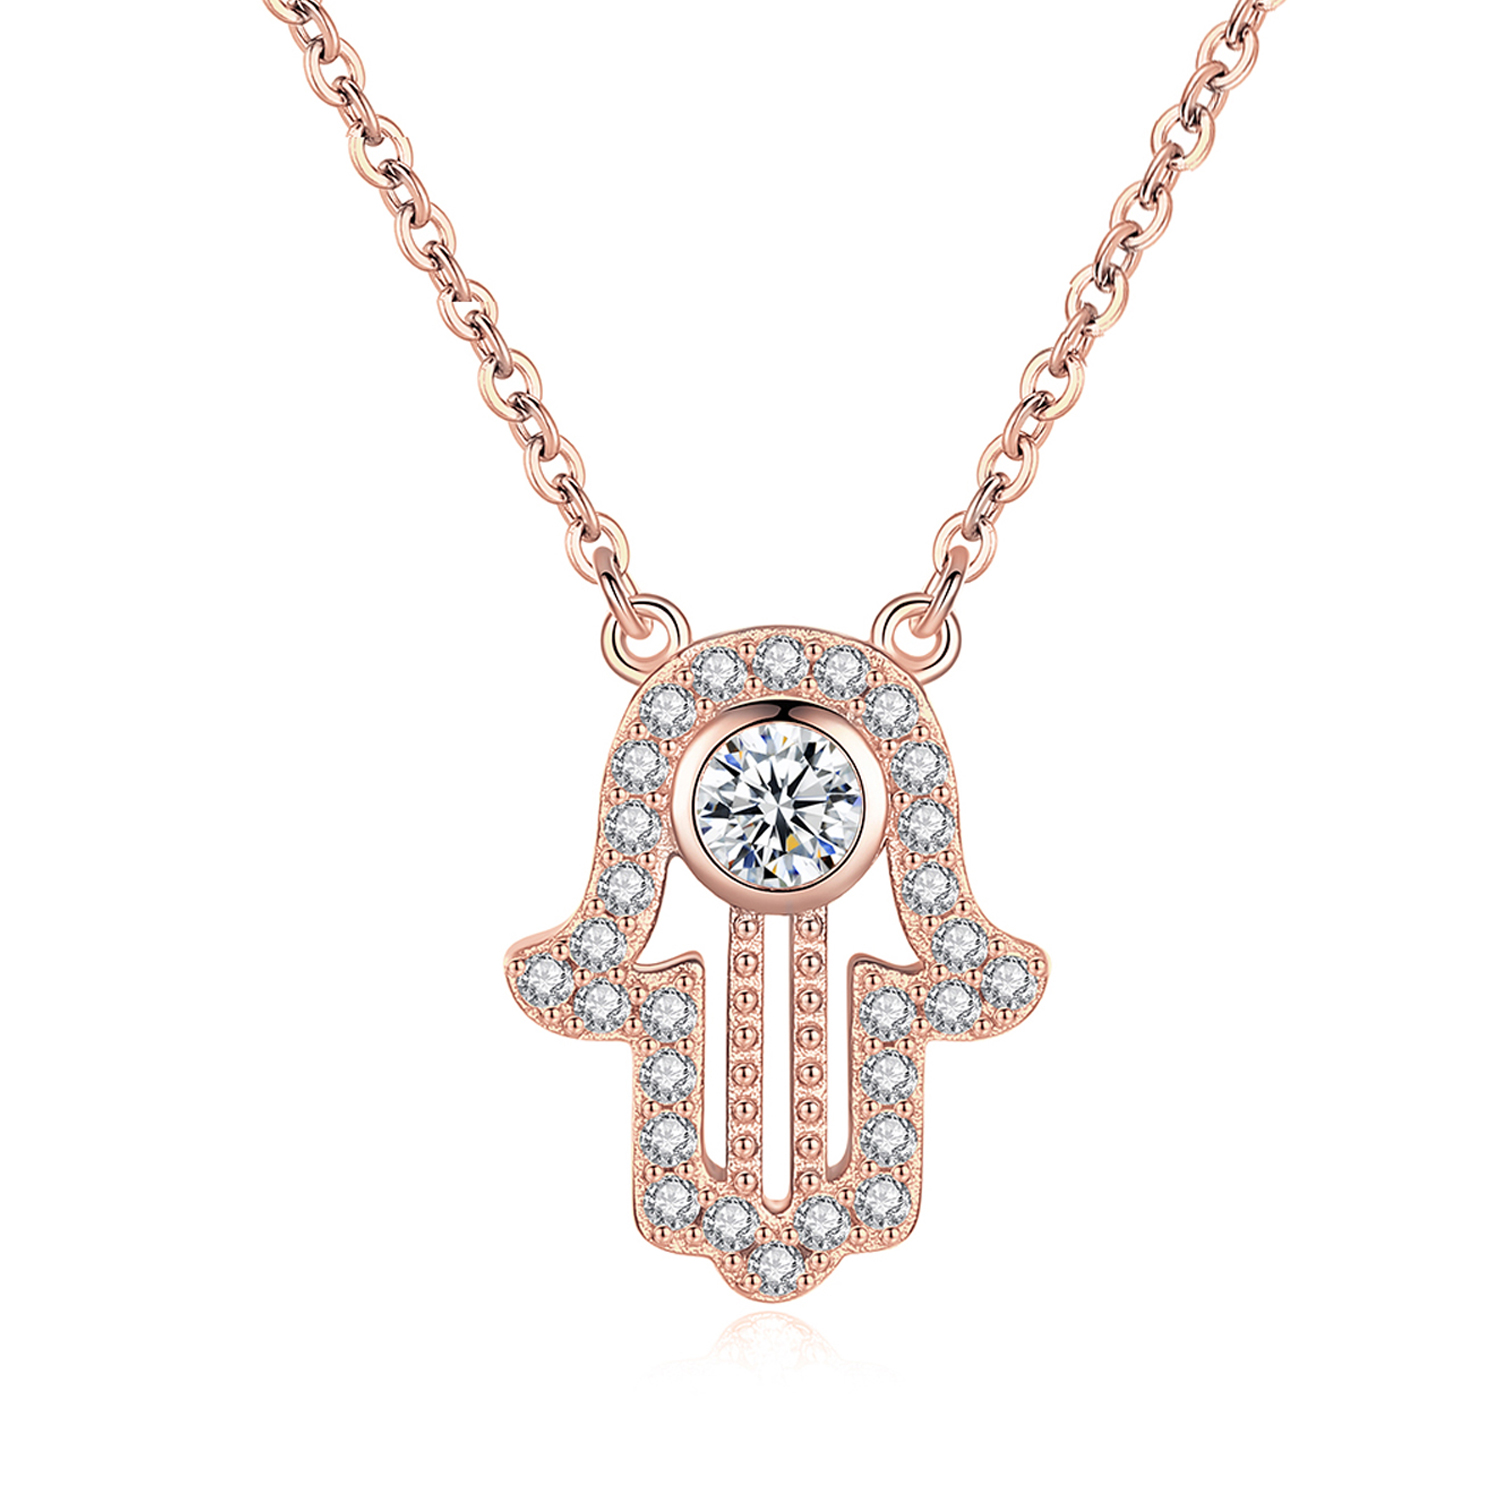 Image 3 - TONGZHE 925 sterling Silver Hand Hamsa Necklace Women Lucky Fatima Link Chain Long Initial Necklace Turkey Jewelry 2019 Choker-in Pendant Necklaces from Jewelry & Accessories